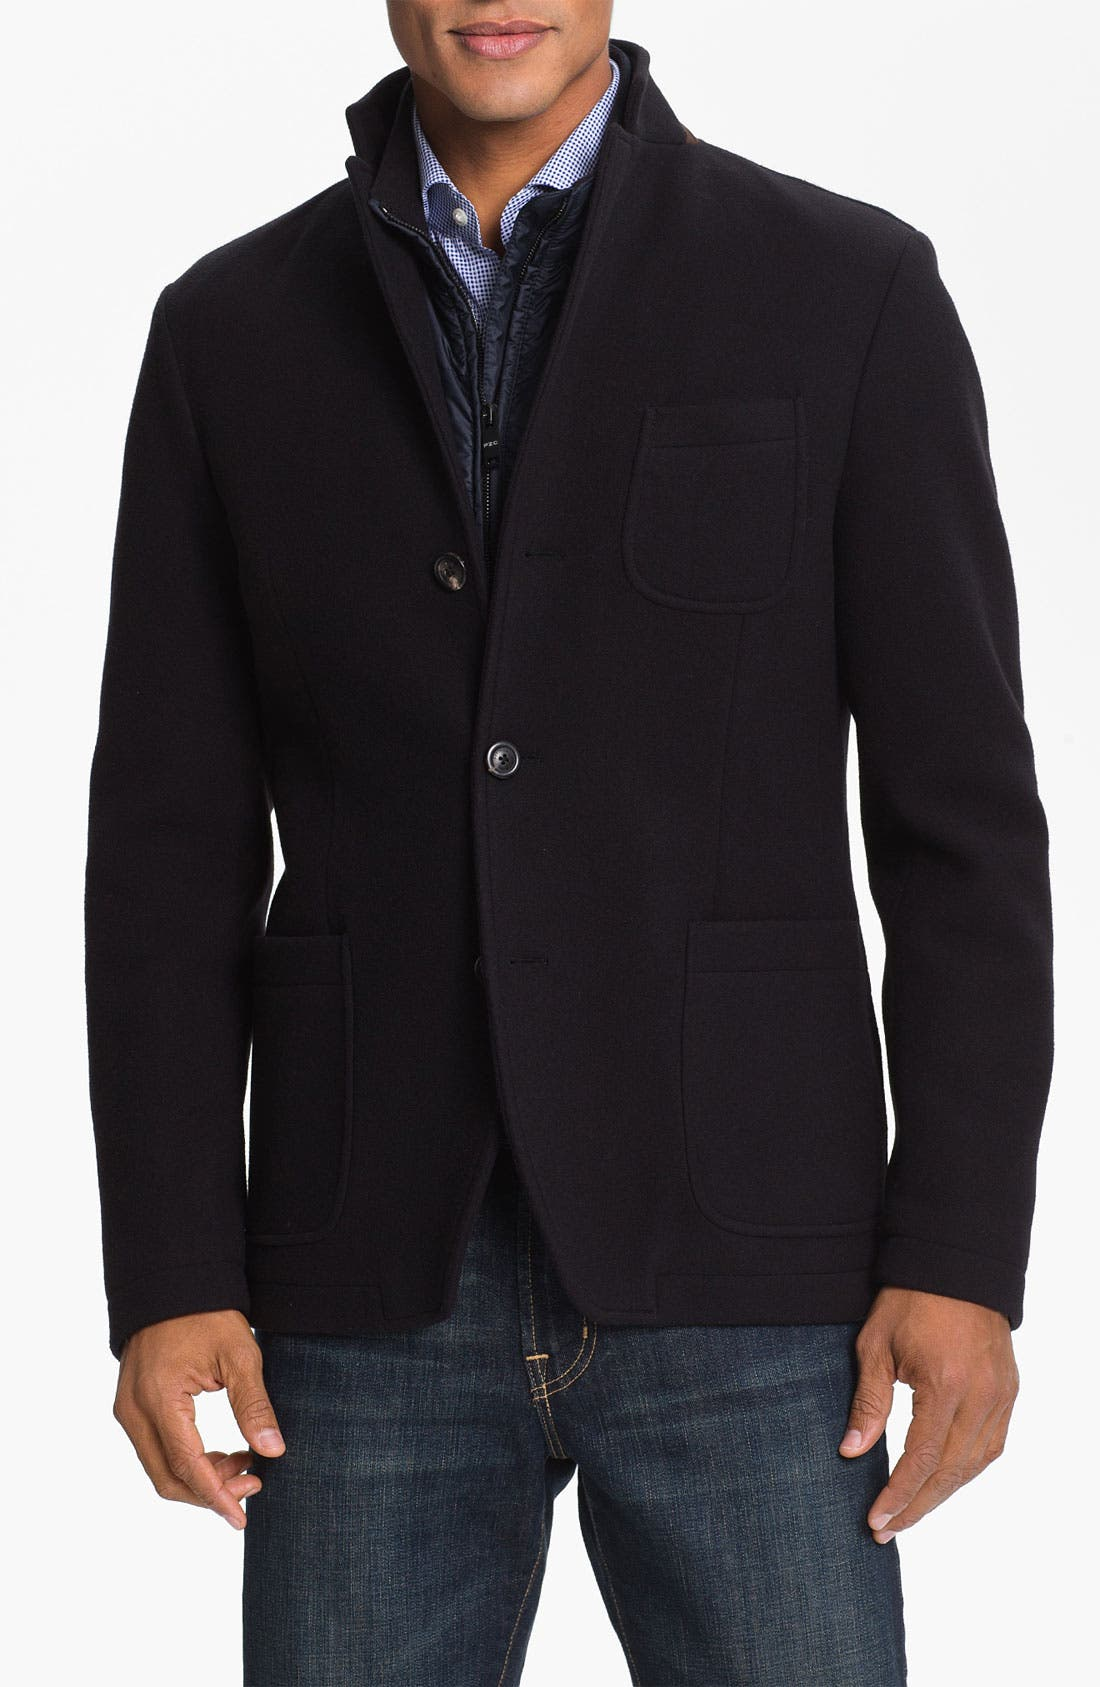 Alternate Image 1 Selected - Pal Zileri Wool Blend Jacket